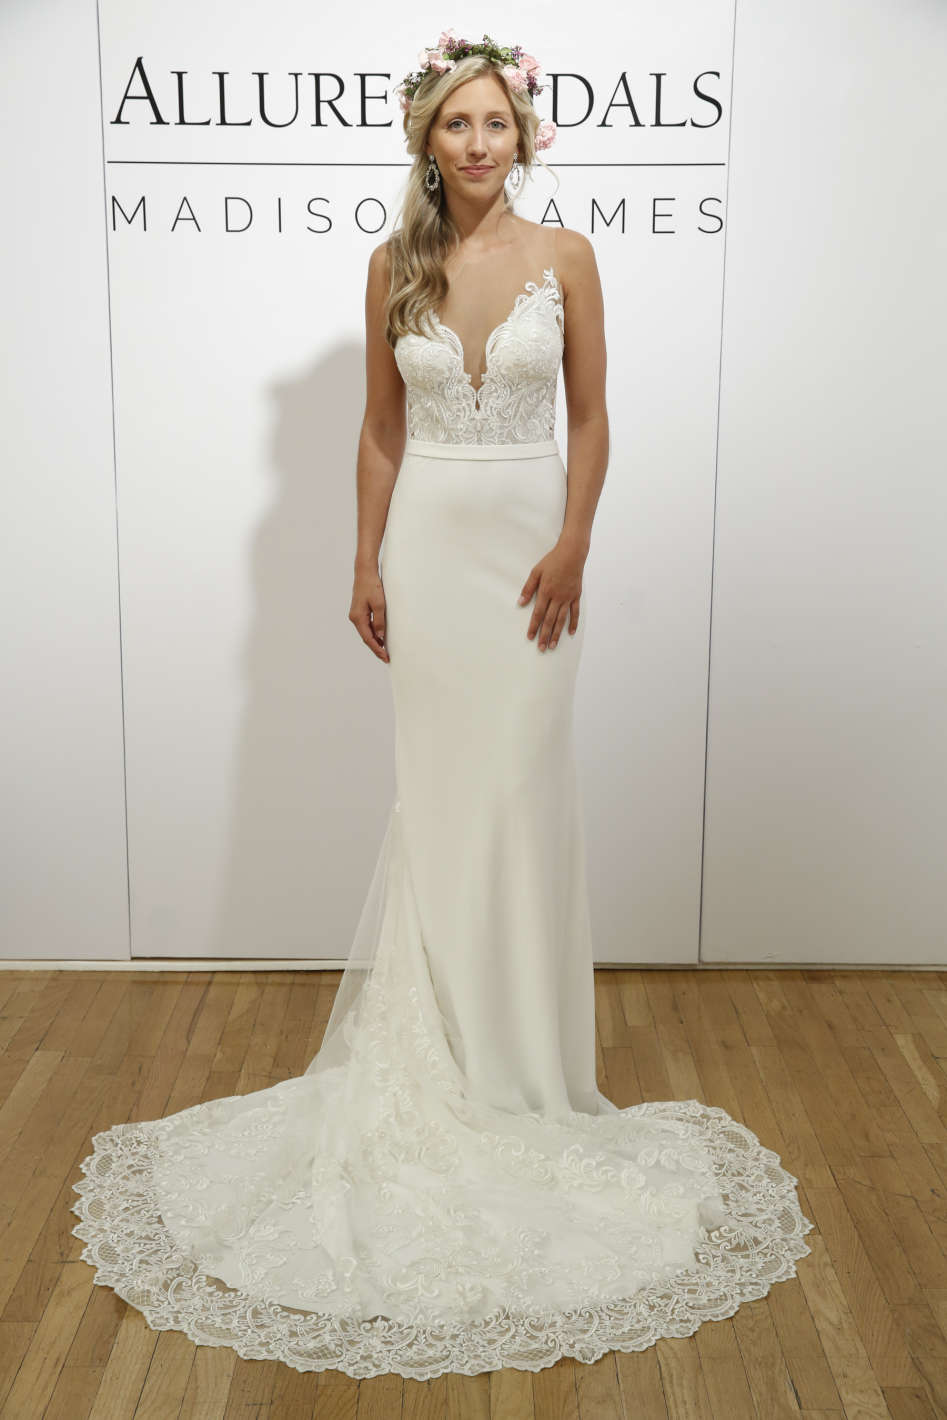 10 amazing wedding dresses in las vegas getting married in vegas vegas is such an eclectic city we recommend looking for a gown that matches that vibe this allure bridals gown combines a sultry deep v neckline with junglespirit Images